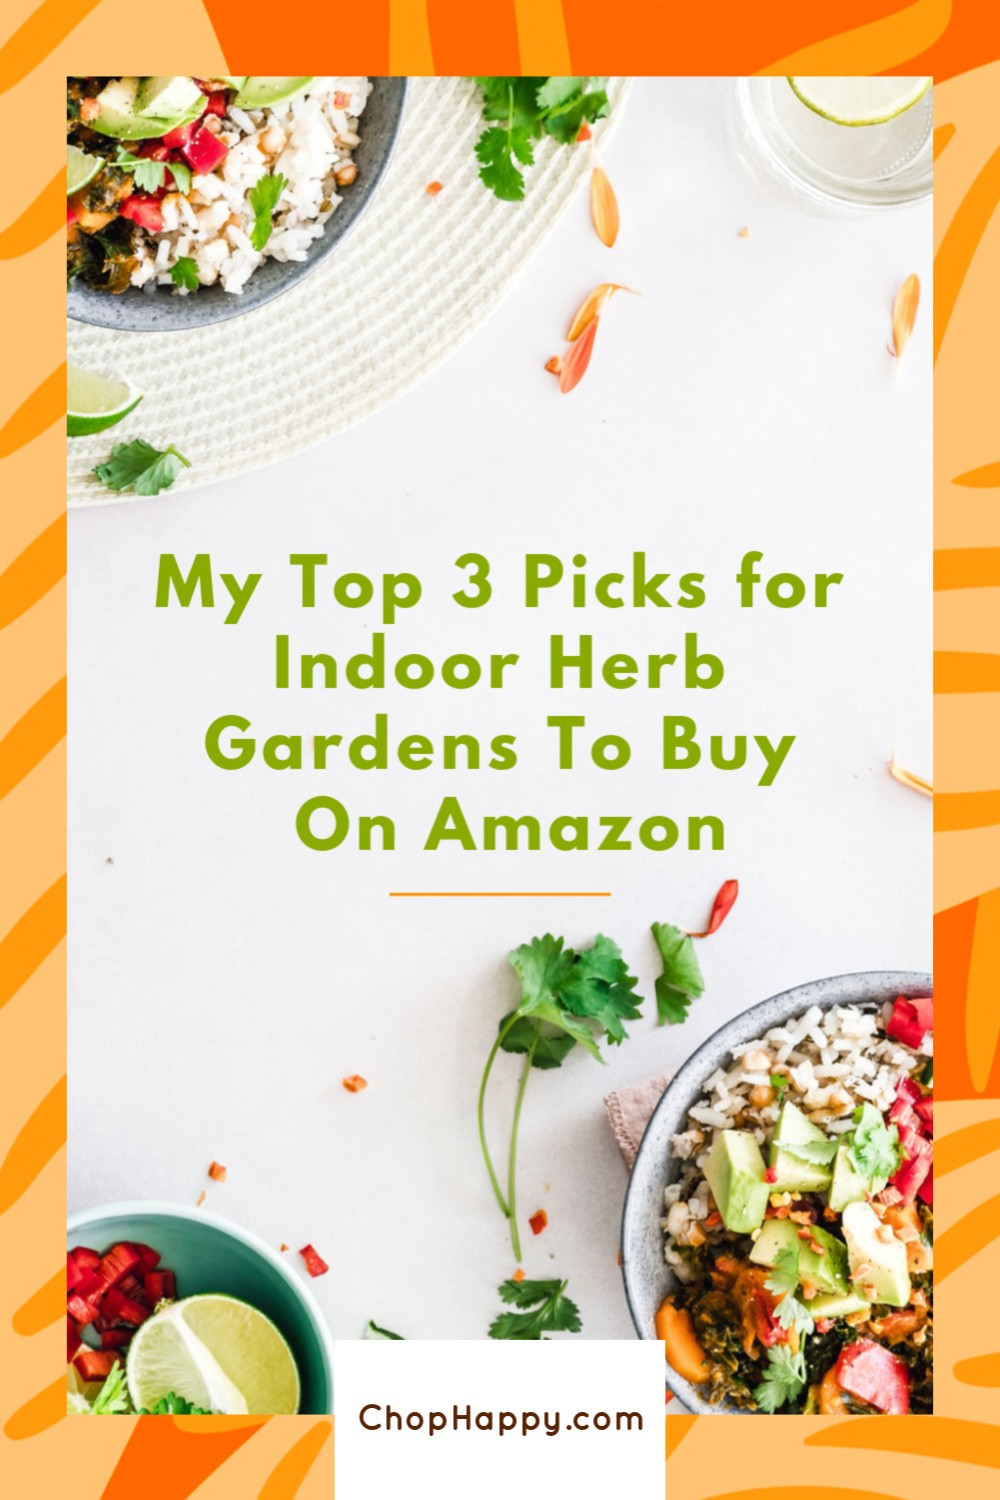 My Top 3 Picks for Indoor Herb Gardens To Buy On Amazon. Grow fresh herbs indoors. I live in a apartment in the city and growing indoor gardens gives me instant access to fresh basil, thyme, mint, parsley, and cilantro. Happy gardening. www.Chophappy.com #indoorgarden #freshherbs